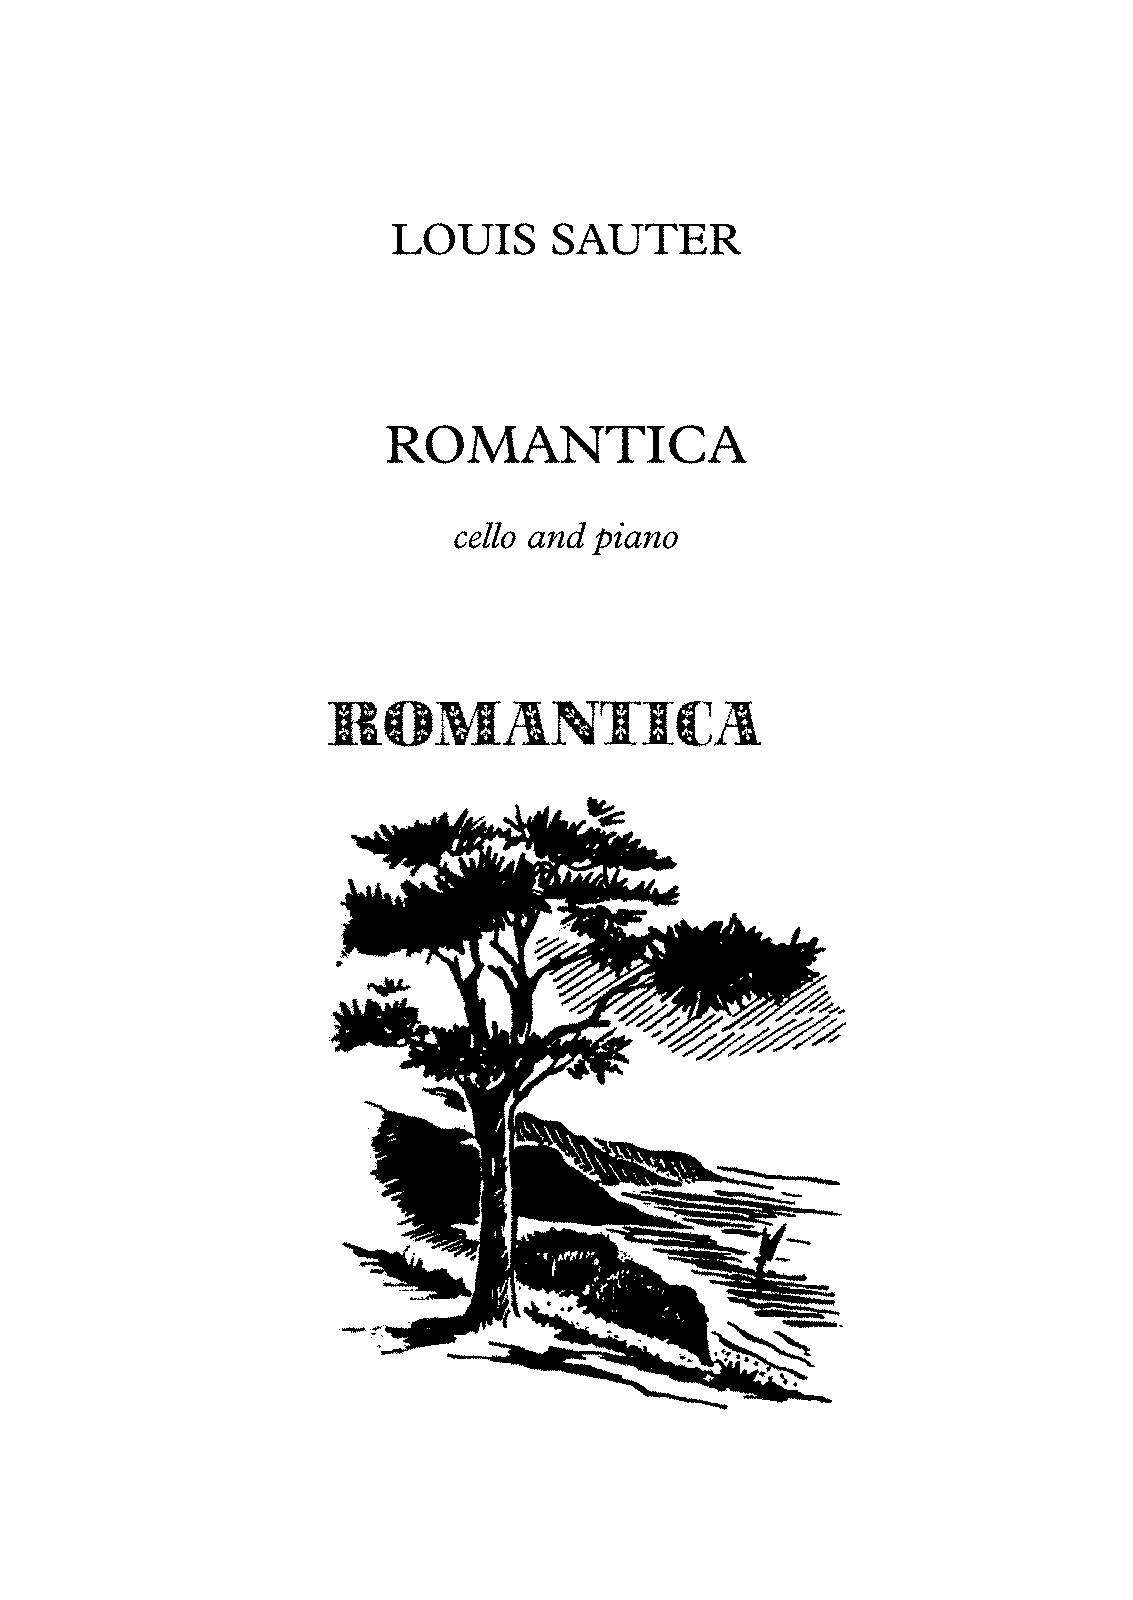 PMLP530476-Sauter Romantica Cello Piano.pdf